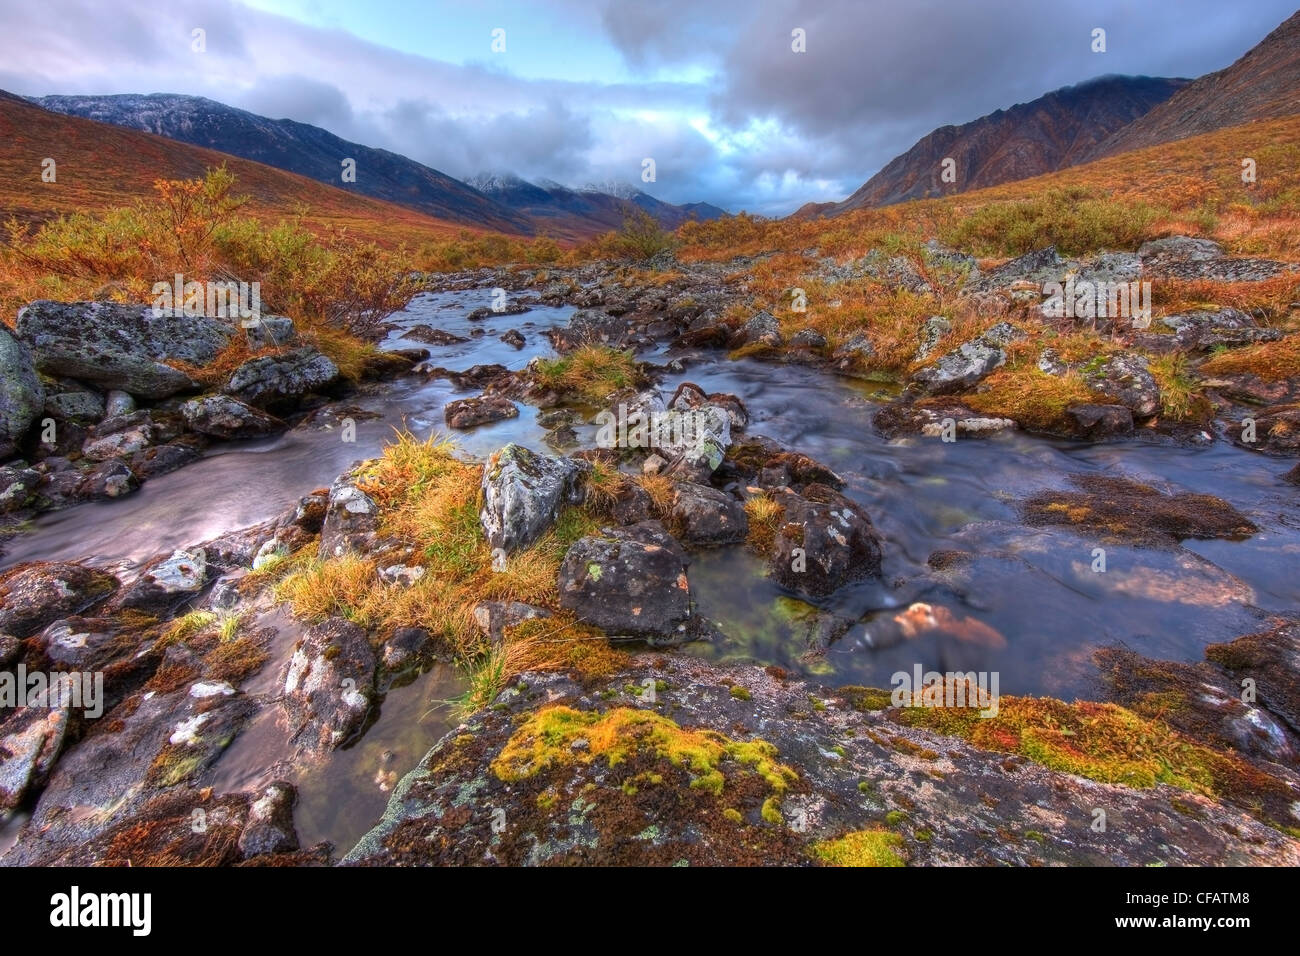 The headwaters of the Klondike River flowing out of Divide Lake, Tombstone Park, Yukon, Canada - Stock Image